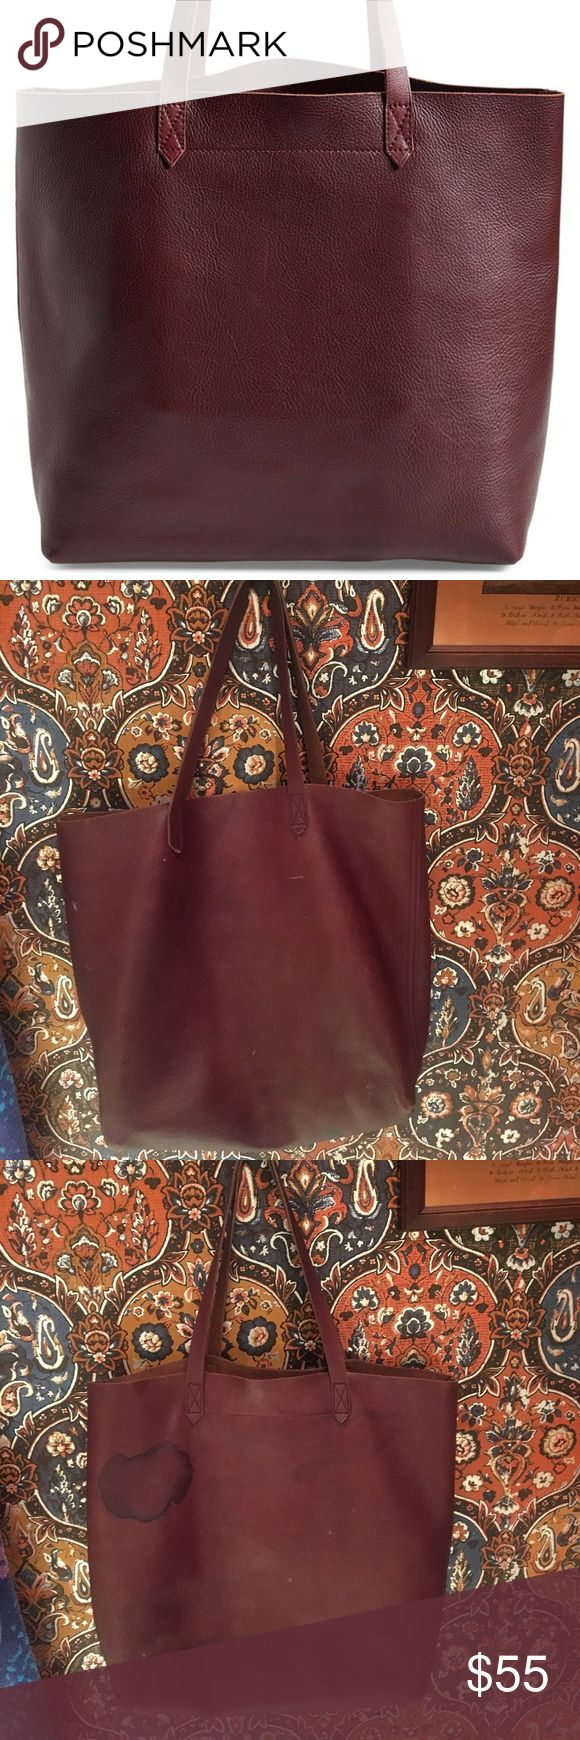 Madewell Transport Tote Burgundy tote. There is a stain on the top left (see picture) but it still has some life left in it! Madewell Bags Totes